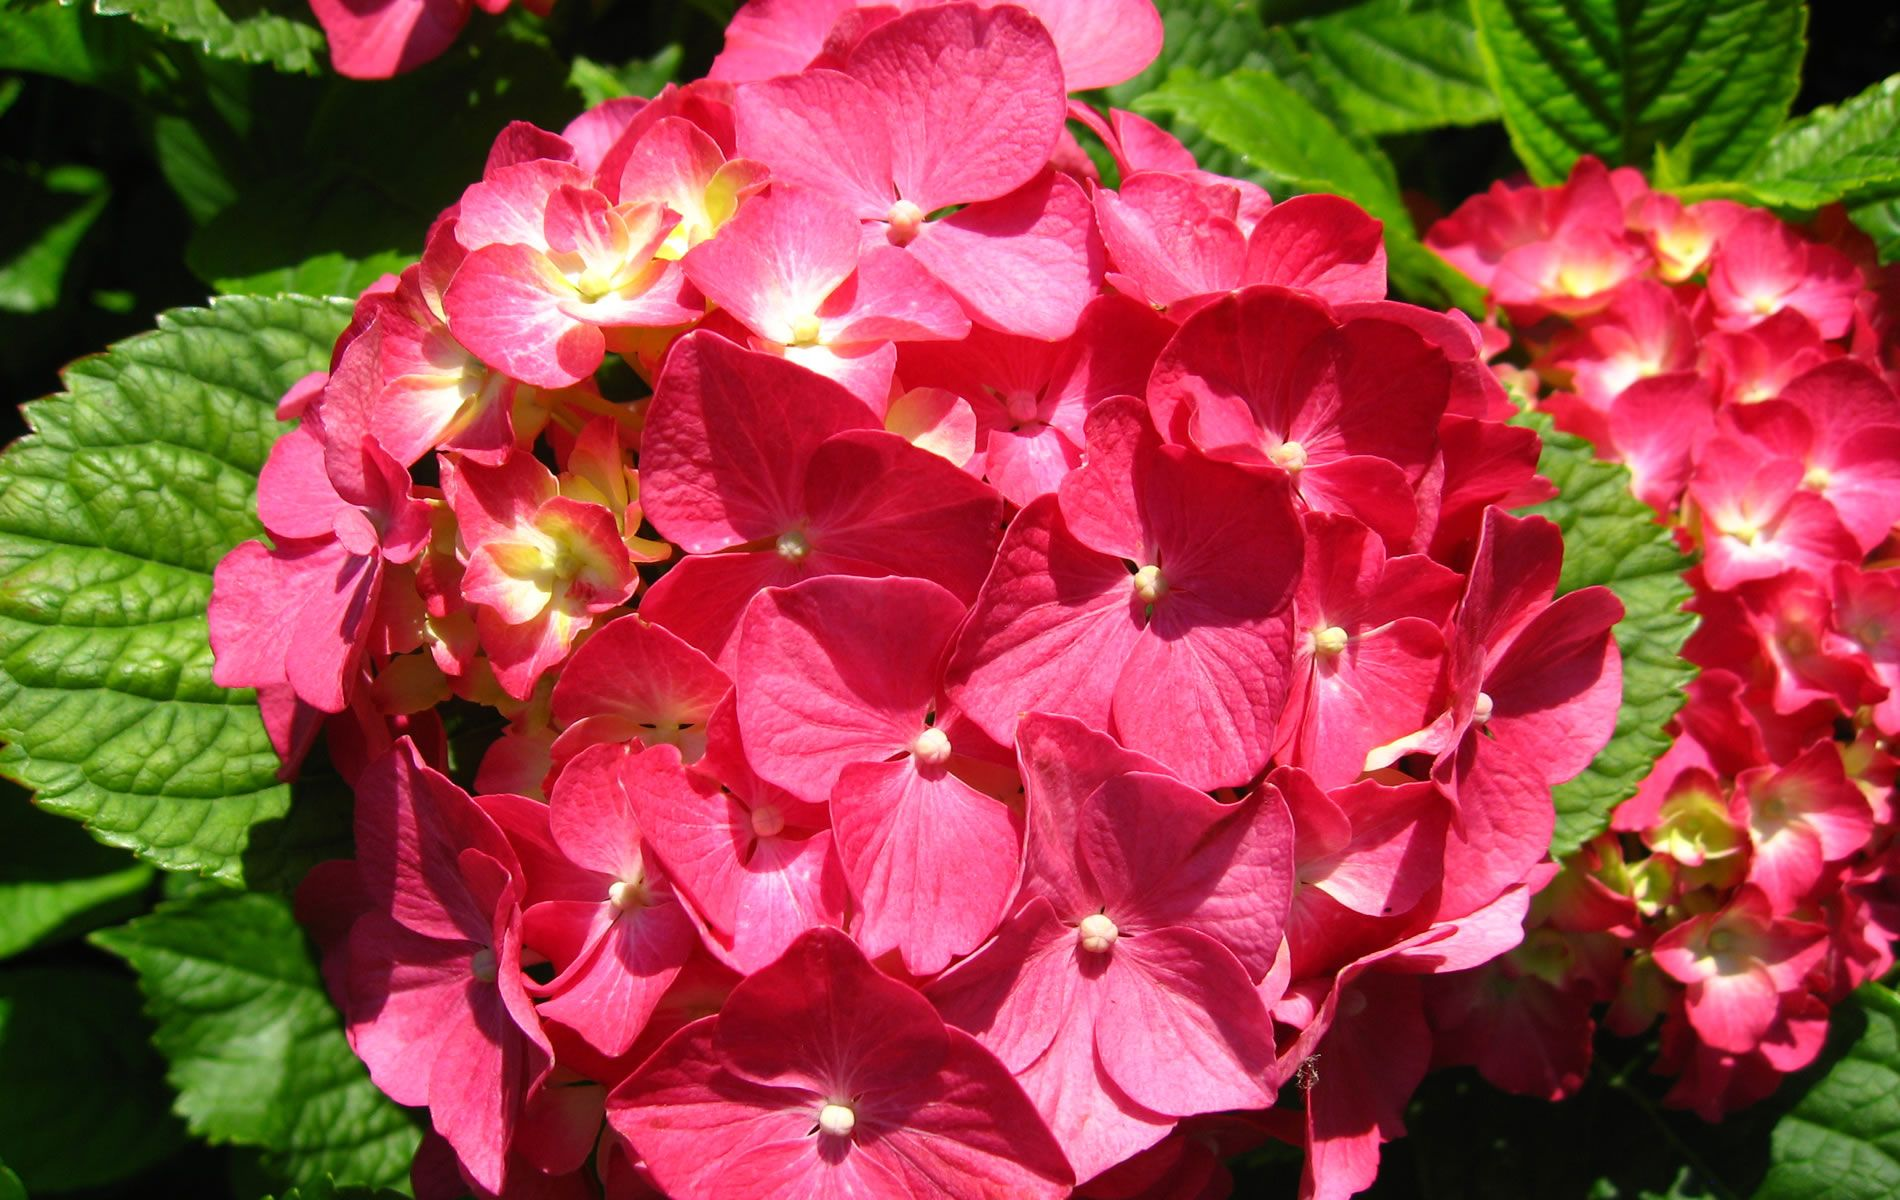 Flower High Definition Wallpaper Free Download - Page 26